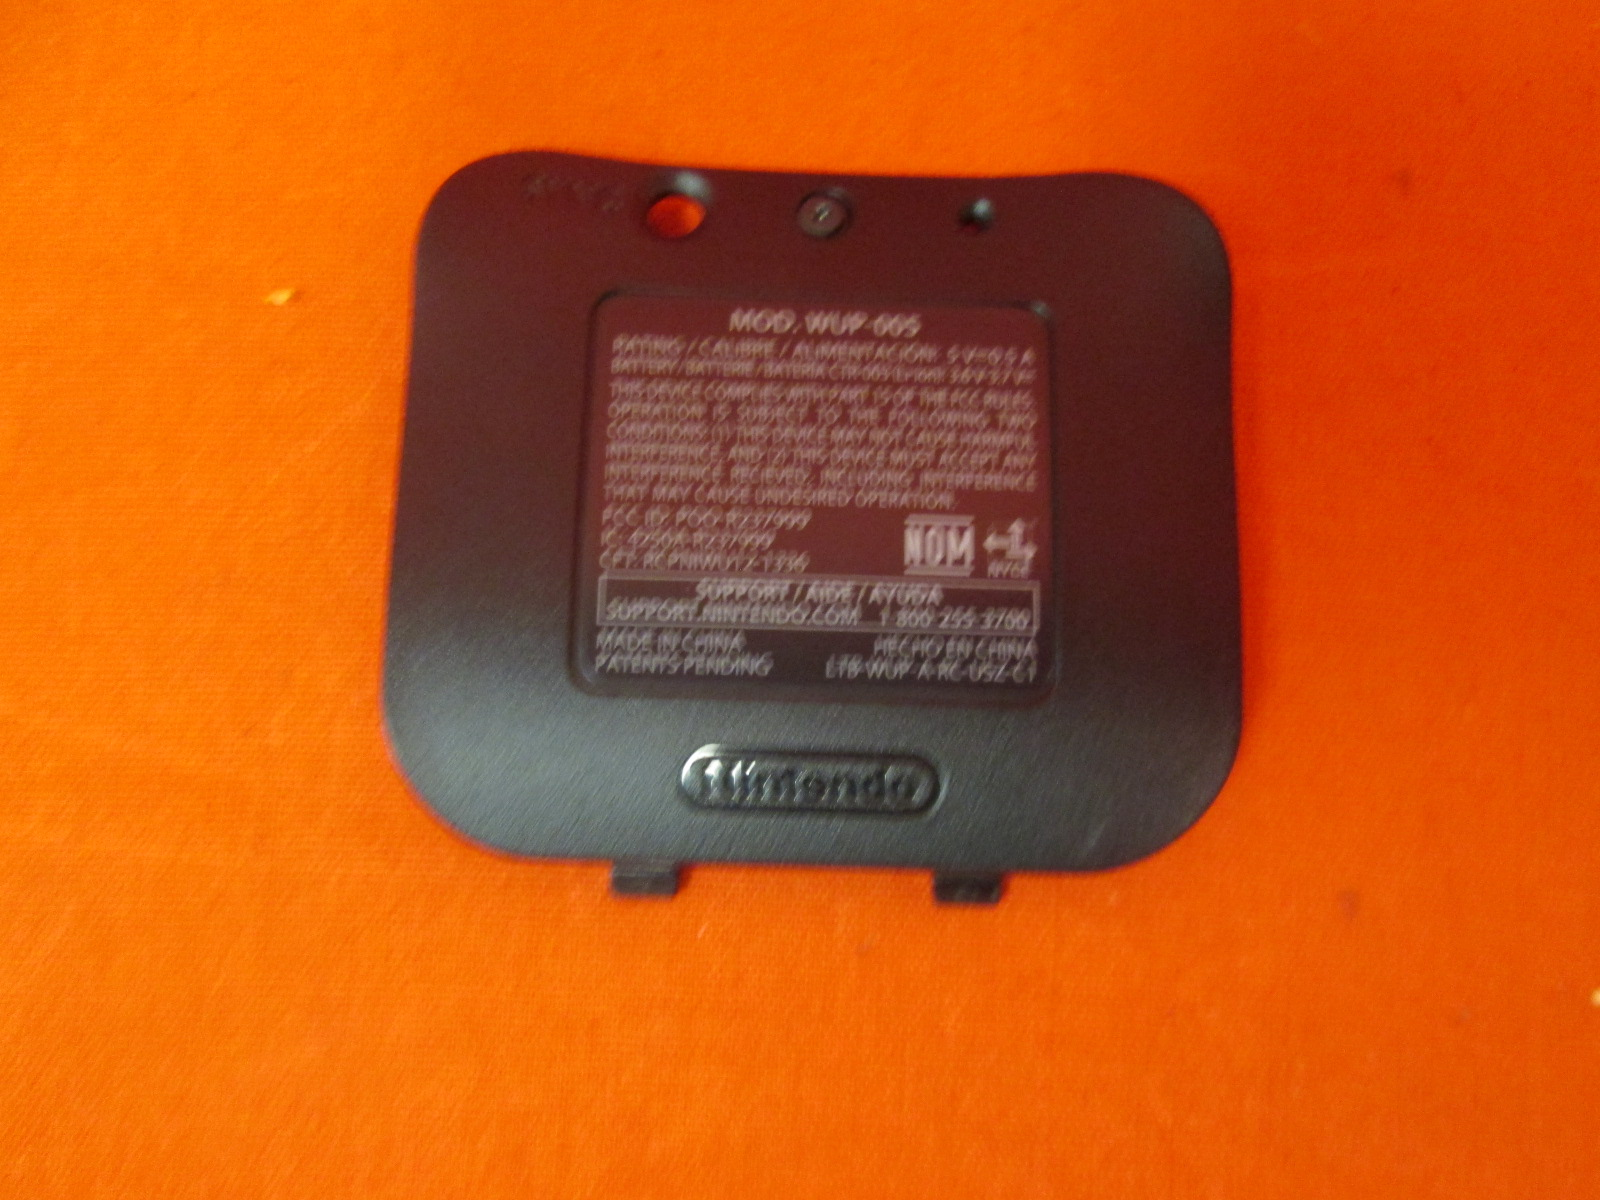 Replacement Battery Cover For Nintendo OEM Pro Controller Black For